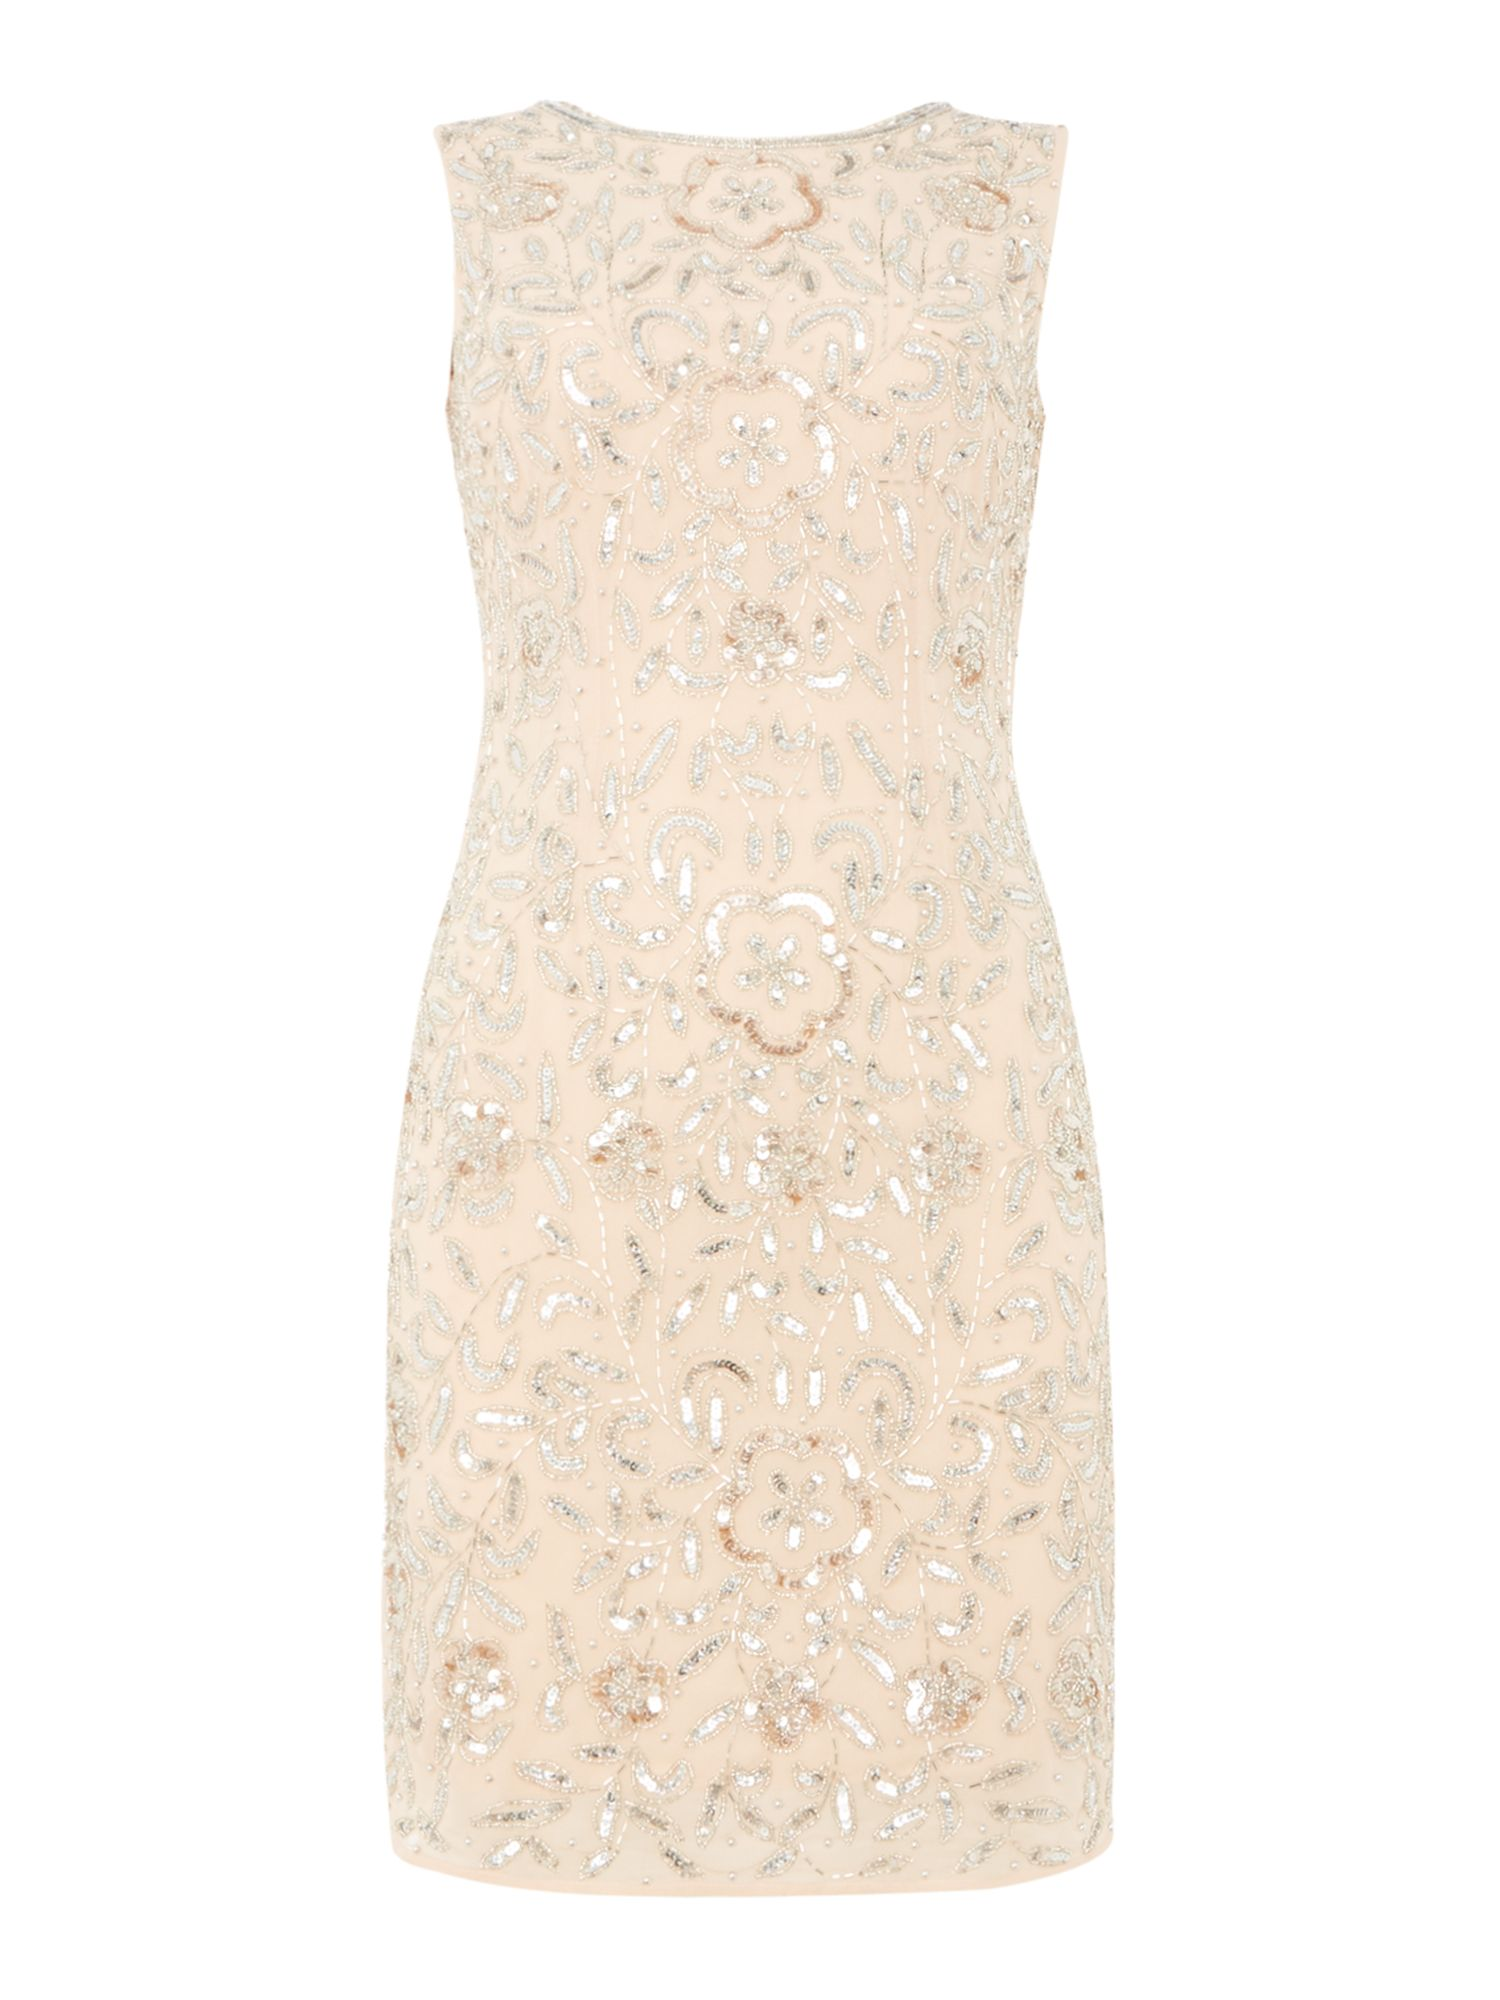 Lace and Beads Round neck embellished shift dress, Nude